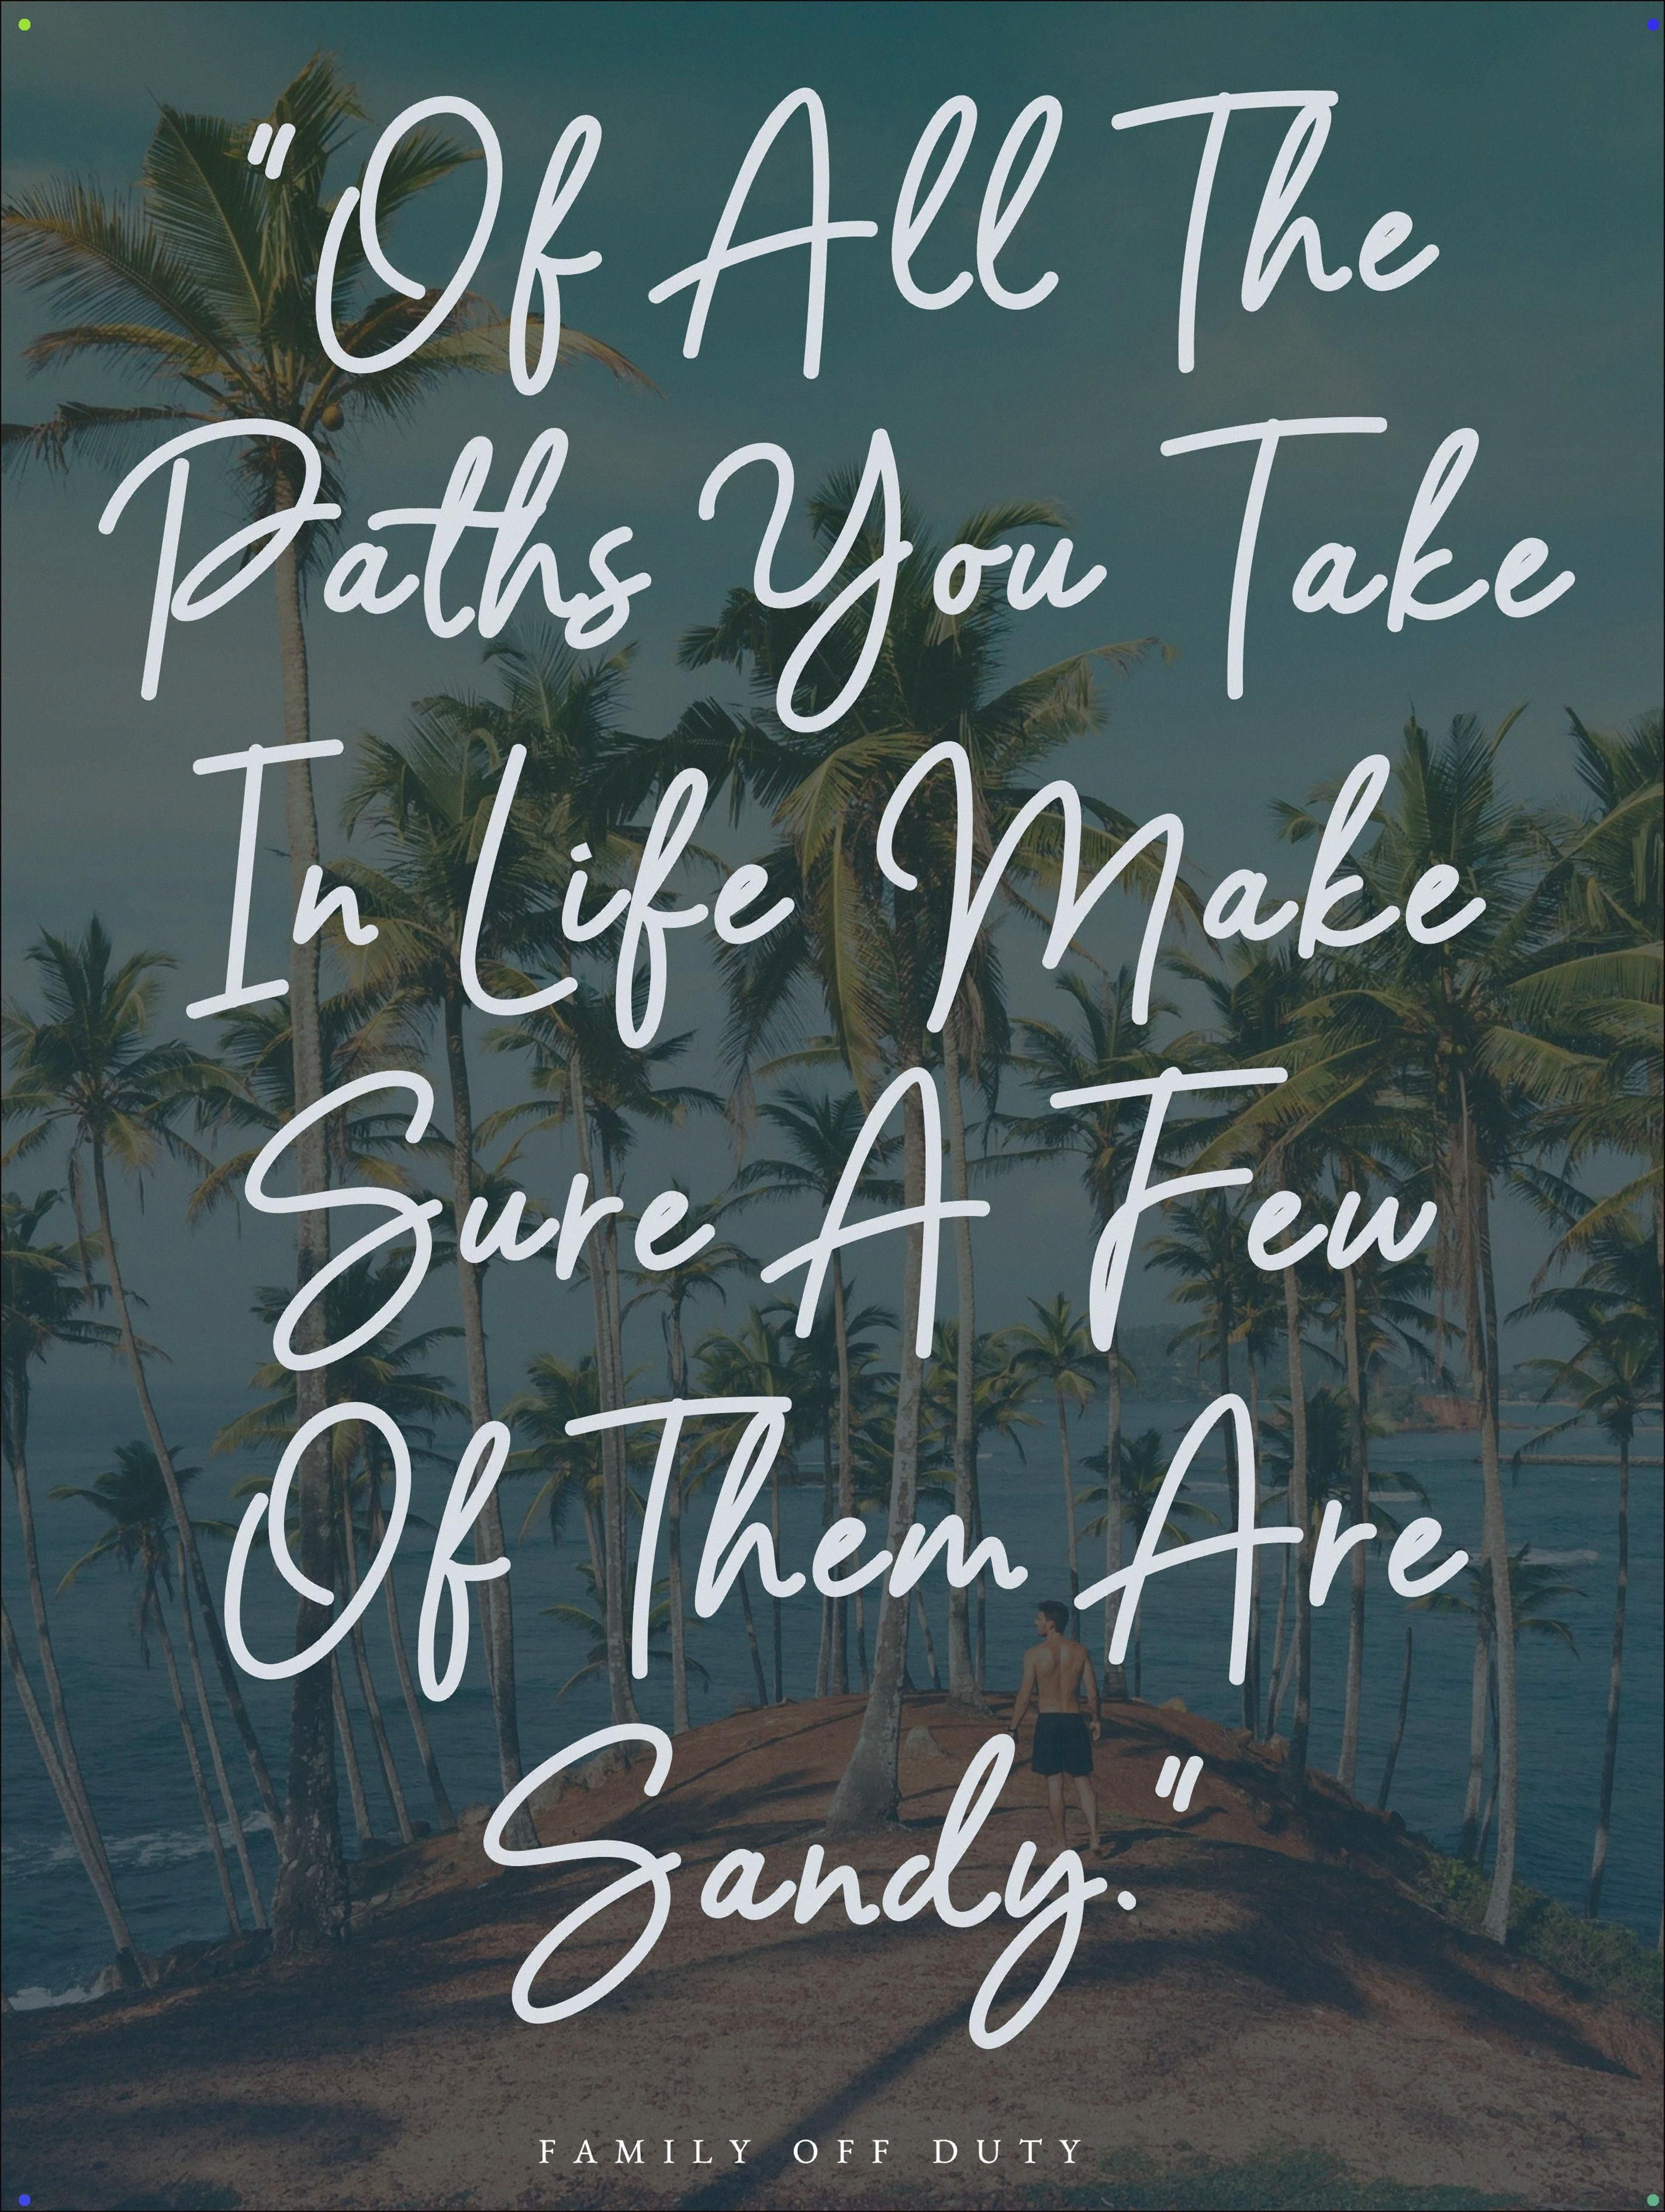 Some Of The Best Vacation Quotes Goodreads With Quotation Author Familytravelquote Travel In 2020 Family Vacation Quotes Family Holiday Quotes Vacation Quotes Funny